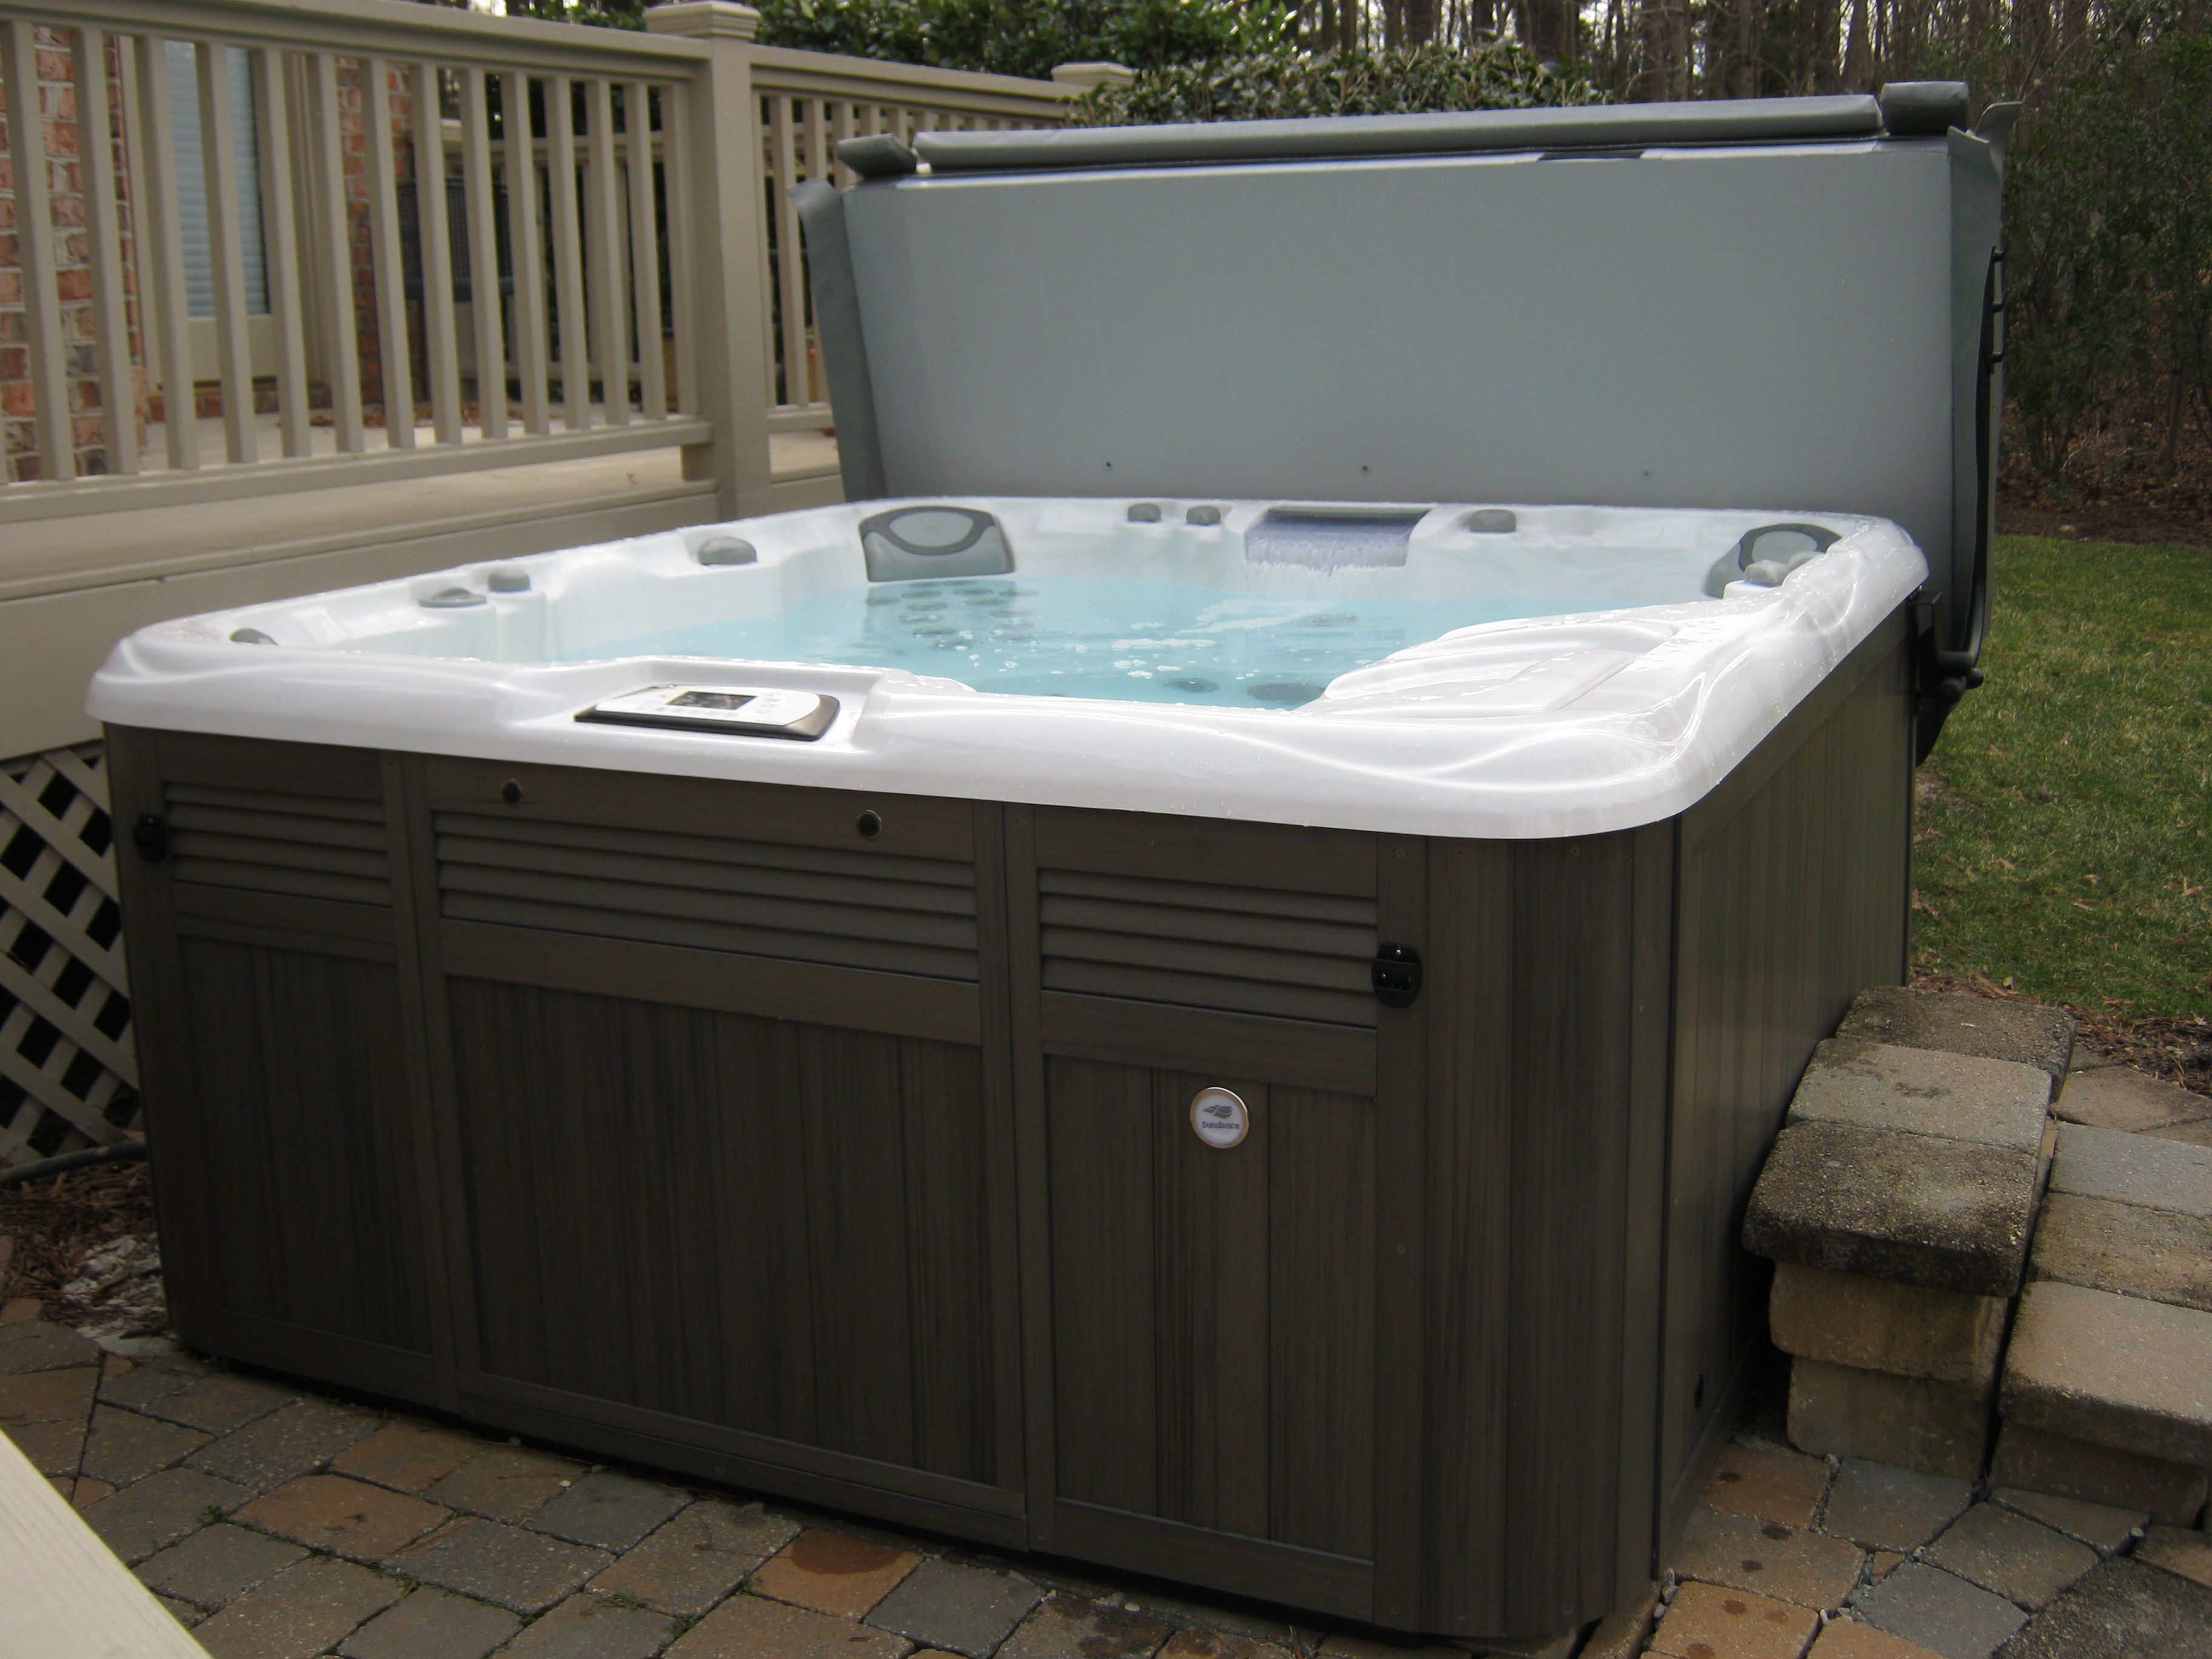 furnace tub hot wood from used wooden with spruce fired shop for en sale products img meter internal